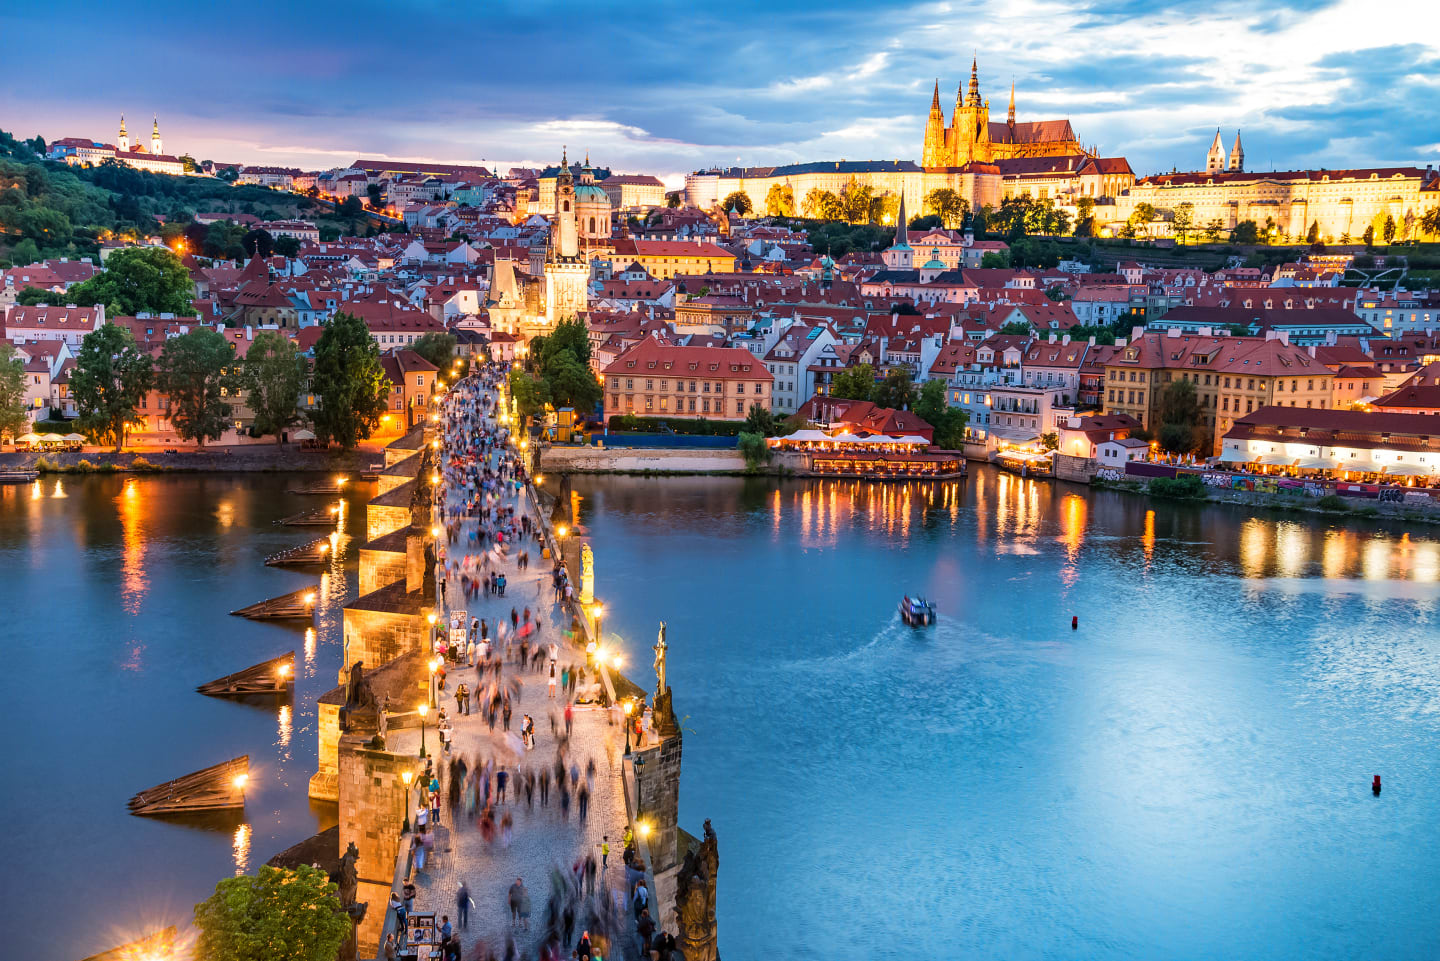 Voyage Europe - Josephine Old Town Square Hotel 4*